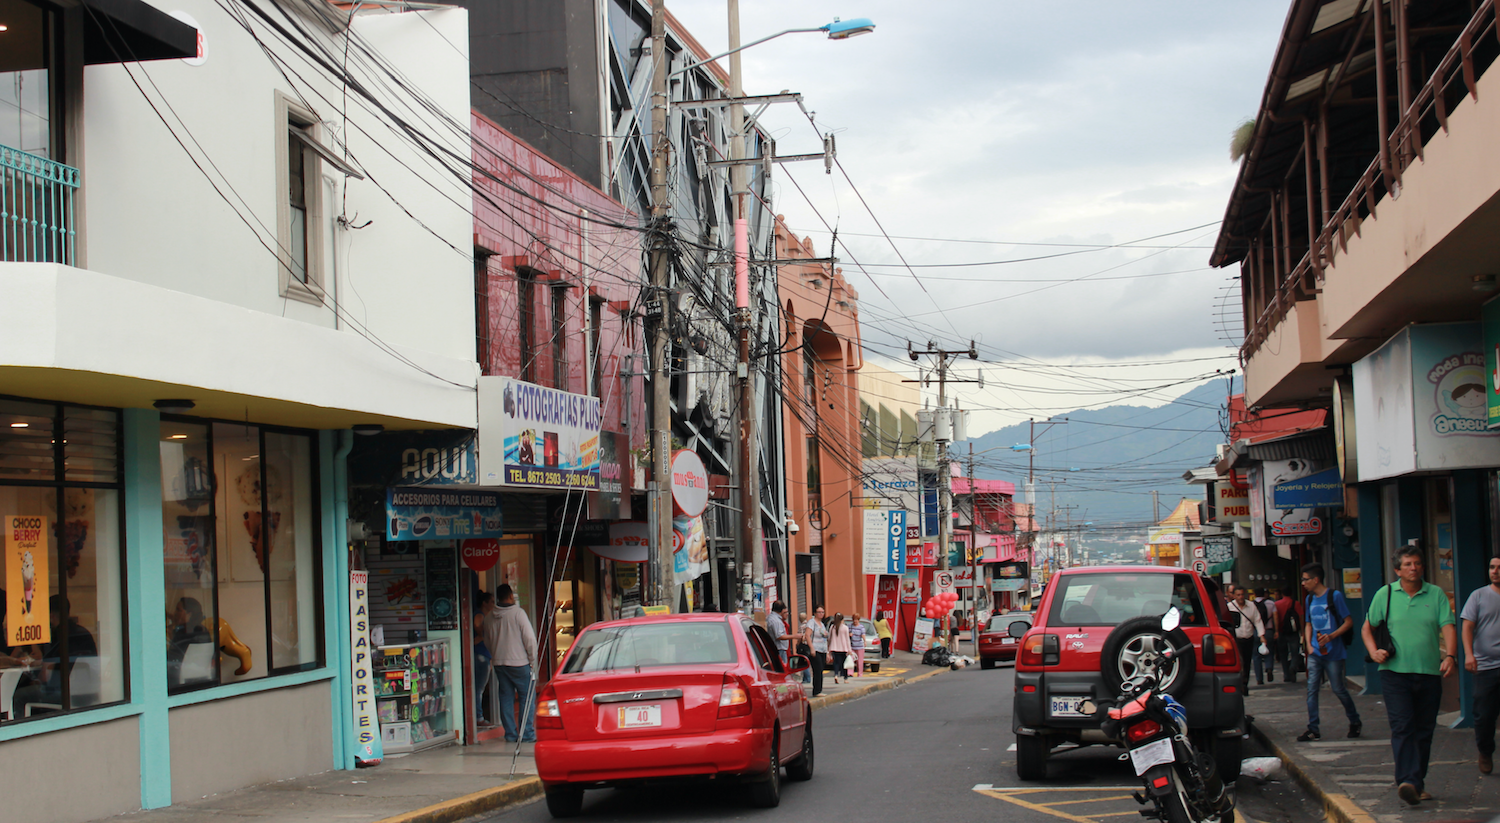 Straße in Costa Rica